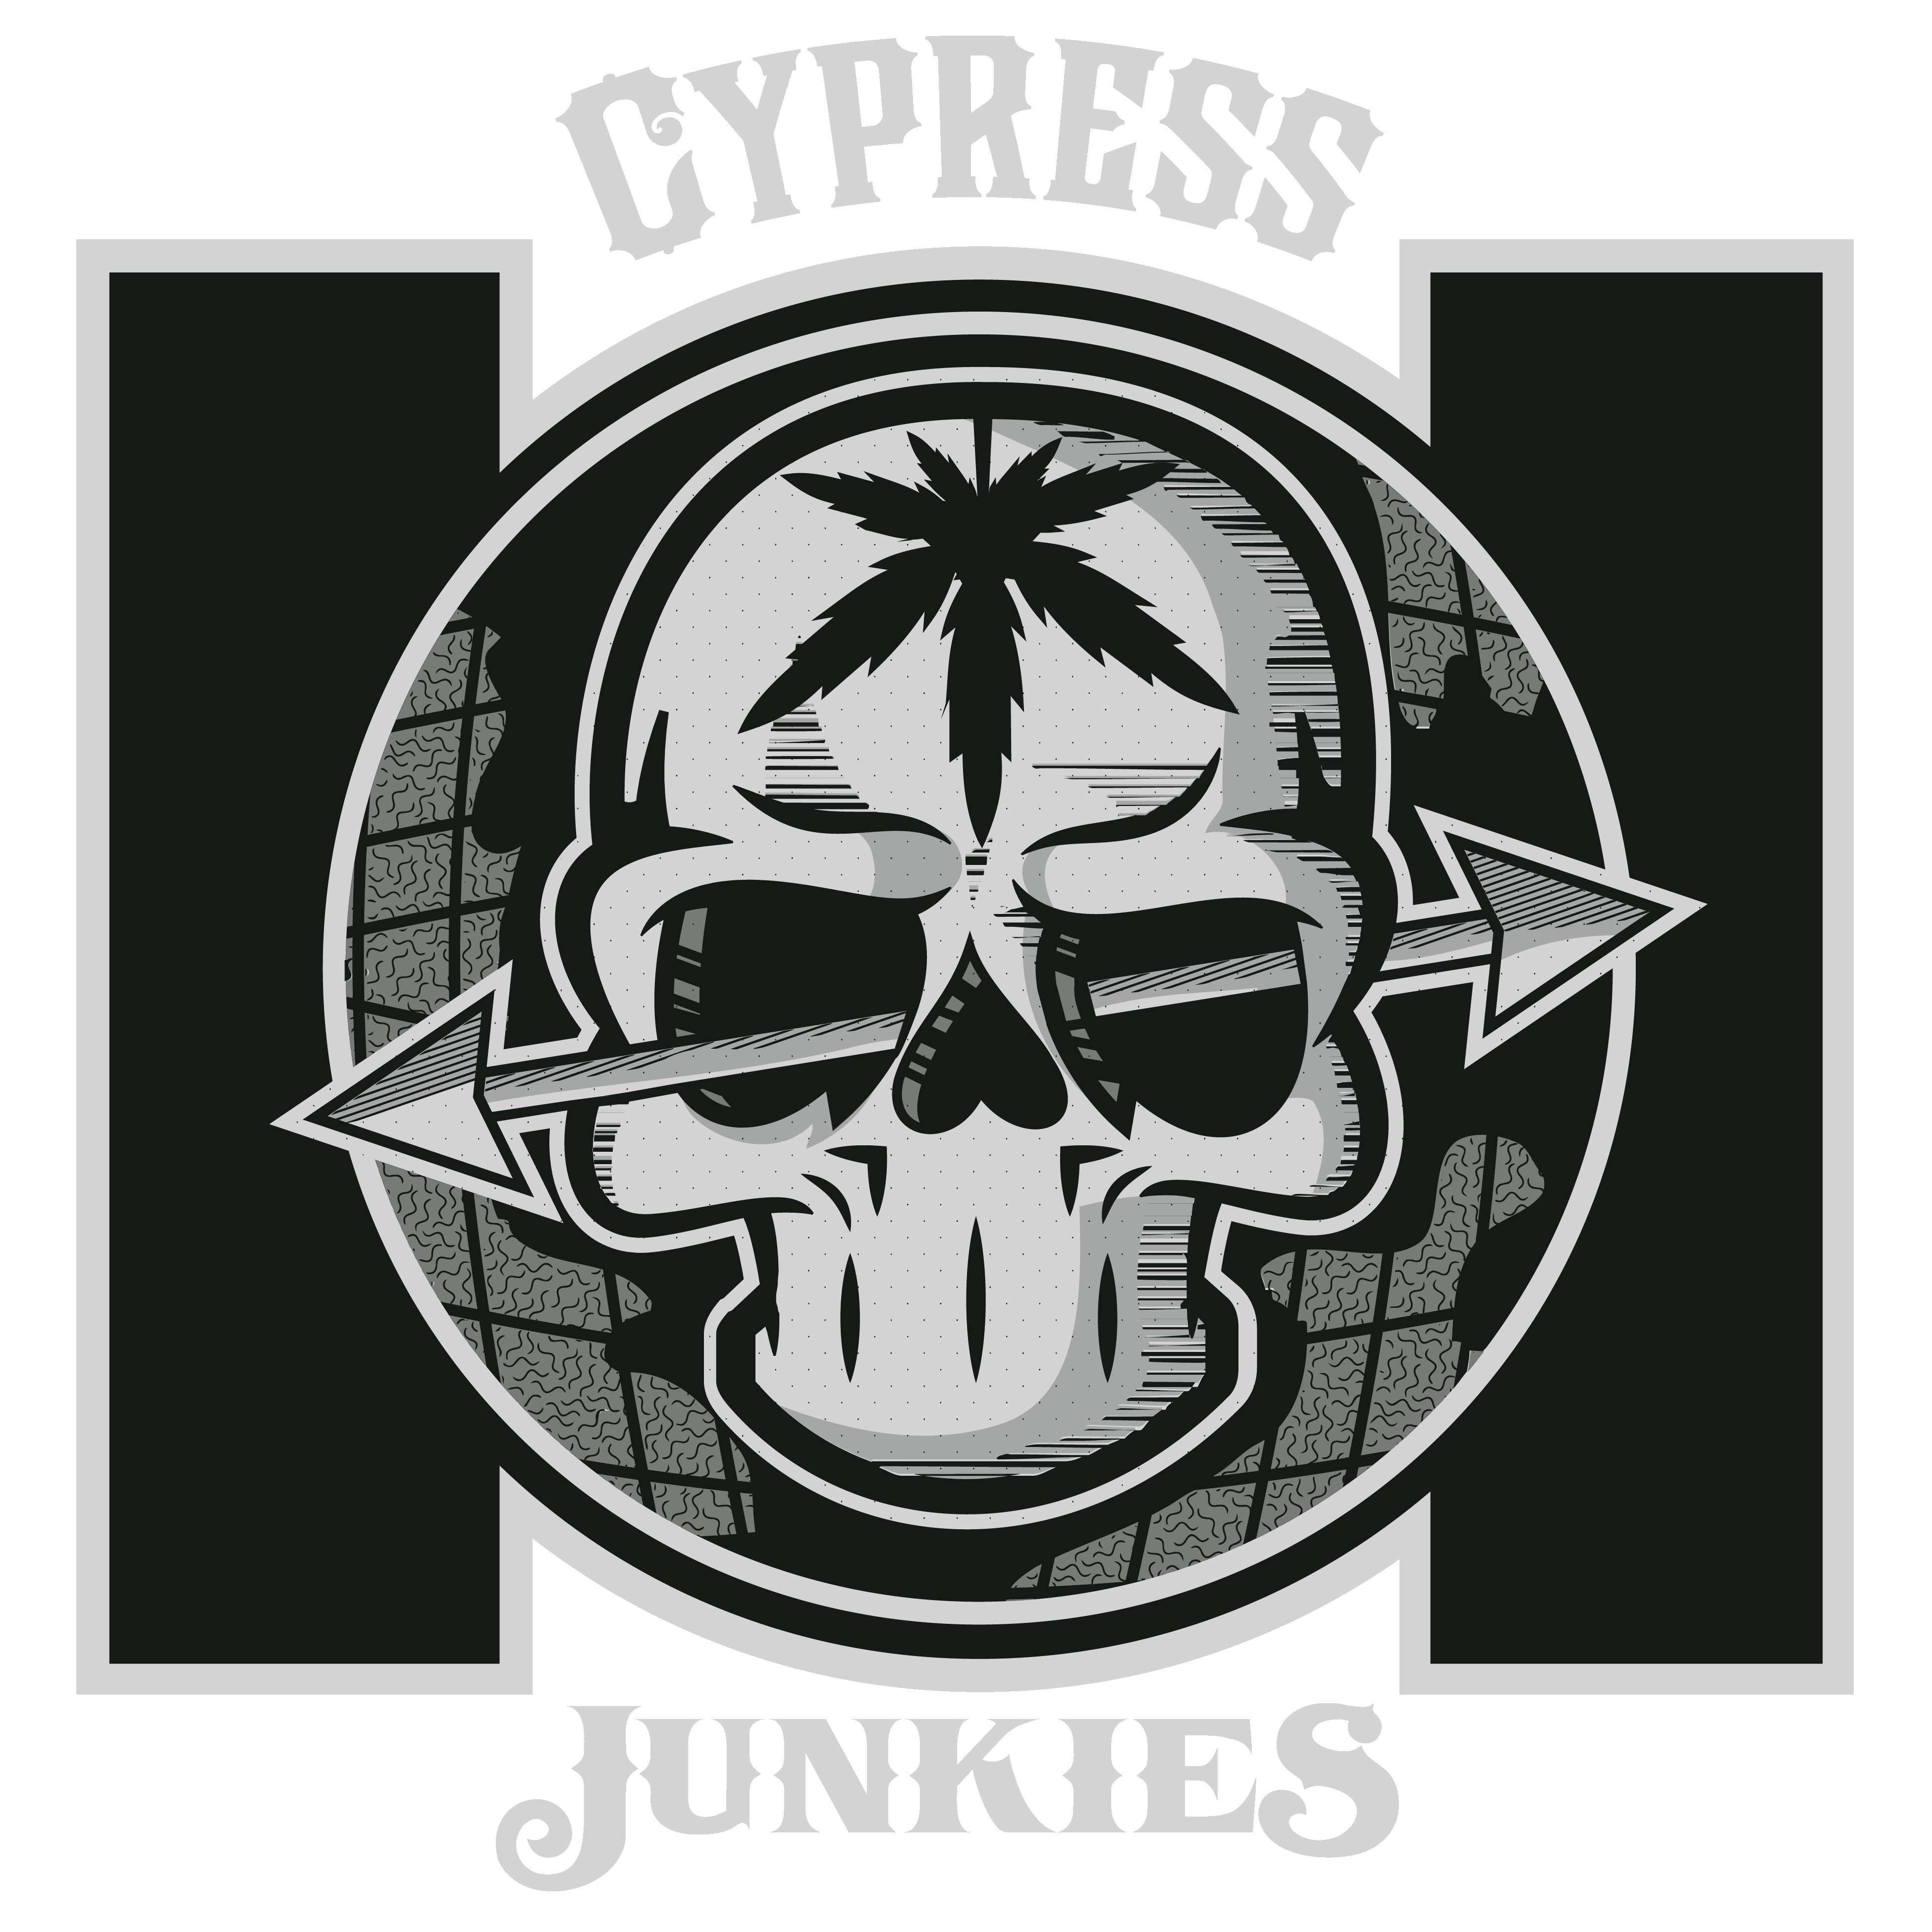 AUDIO: CYPRESS JUNKIES LIVE AT THE LOW END THEORY FESTIVAL ...